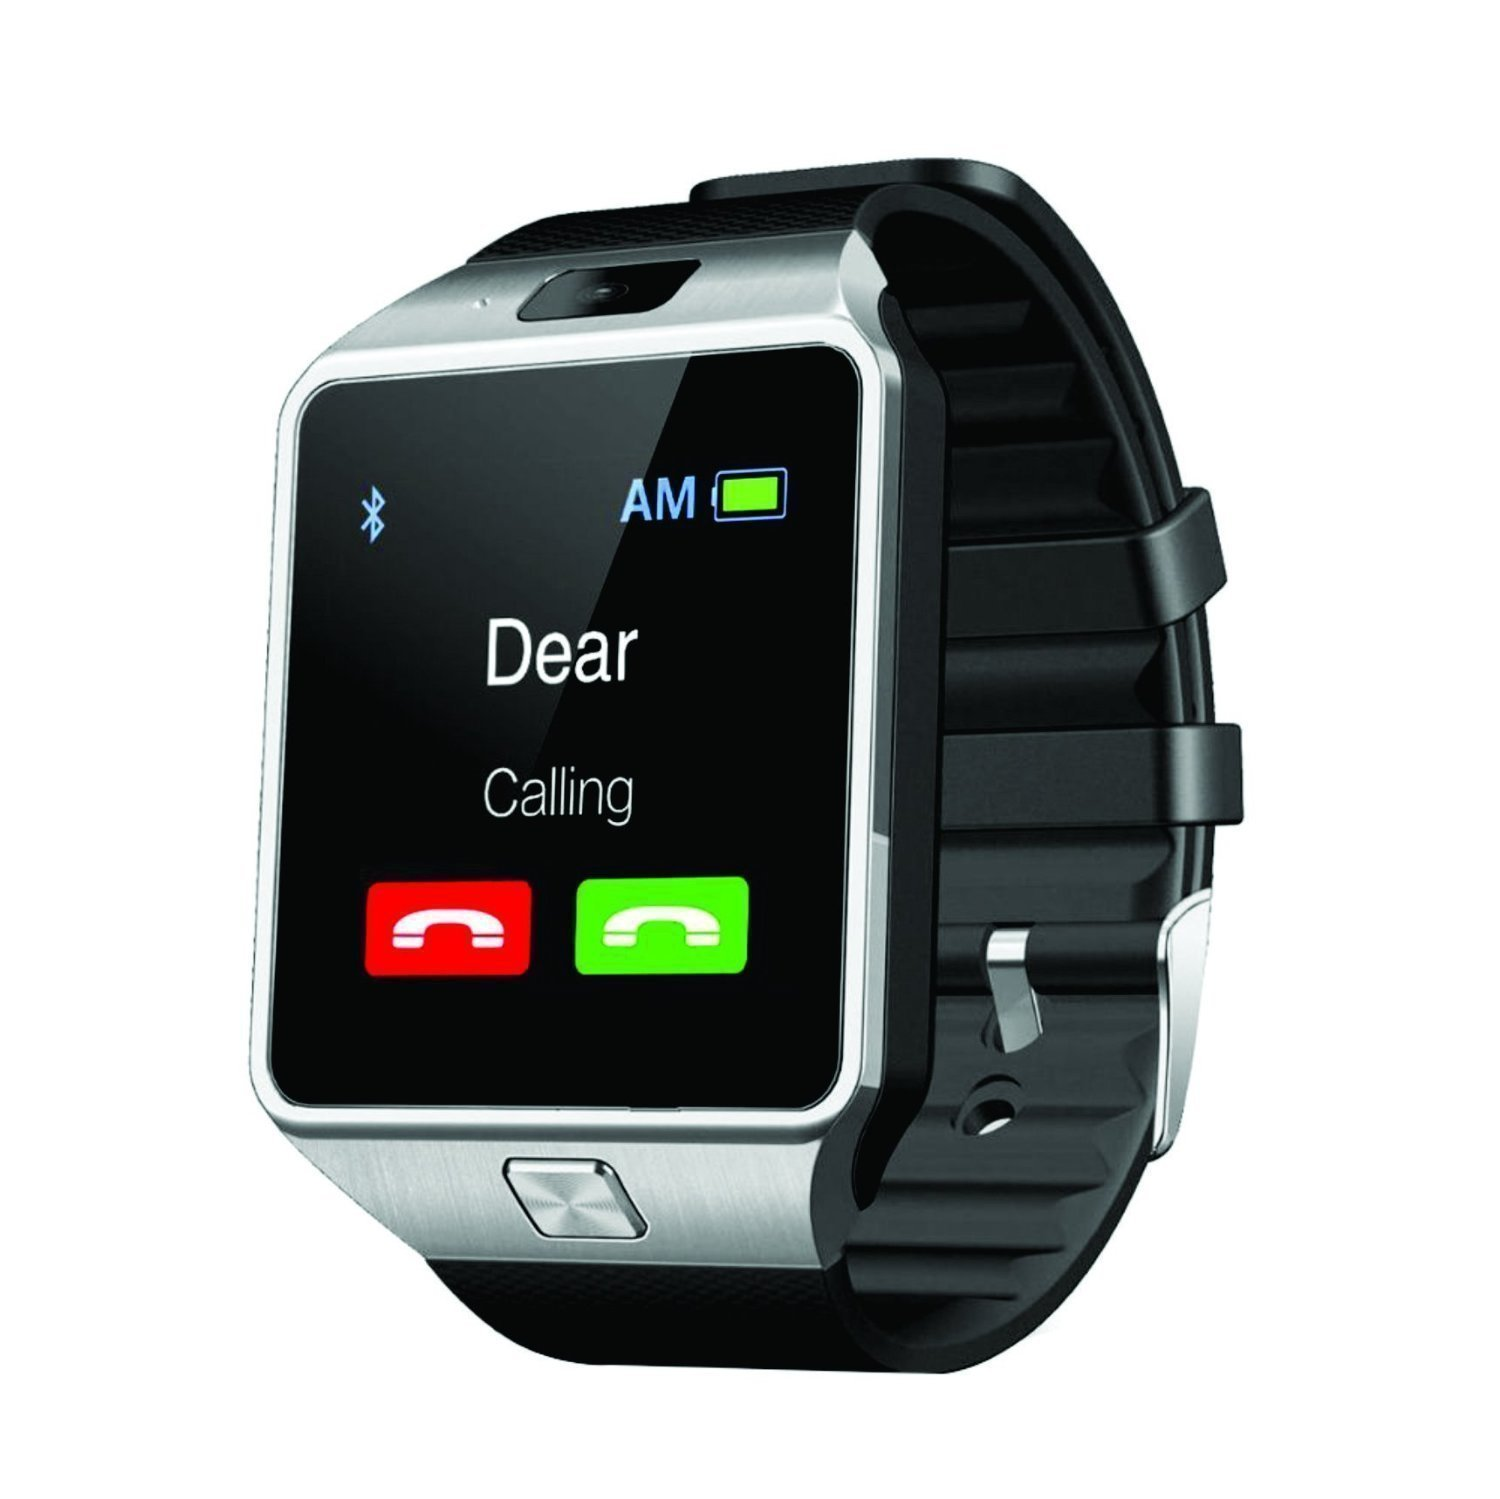 bluetooth smart compatible avika i phone watches all iphone apple product